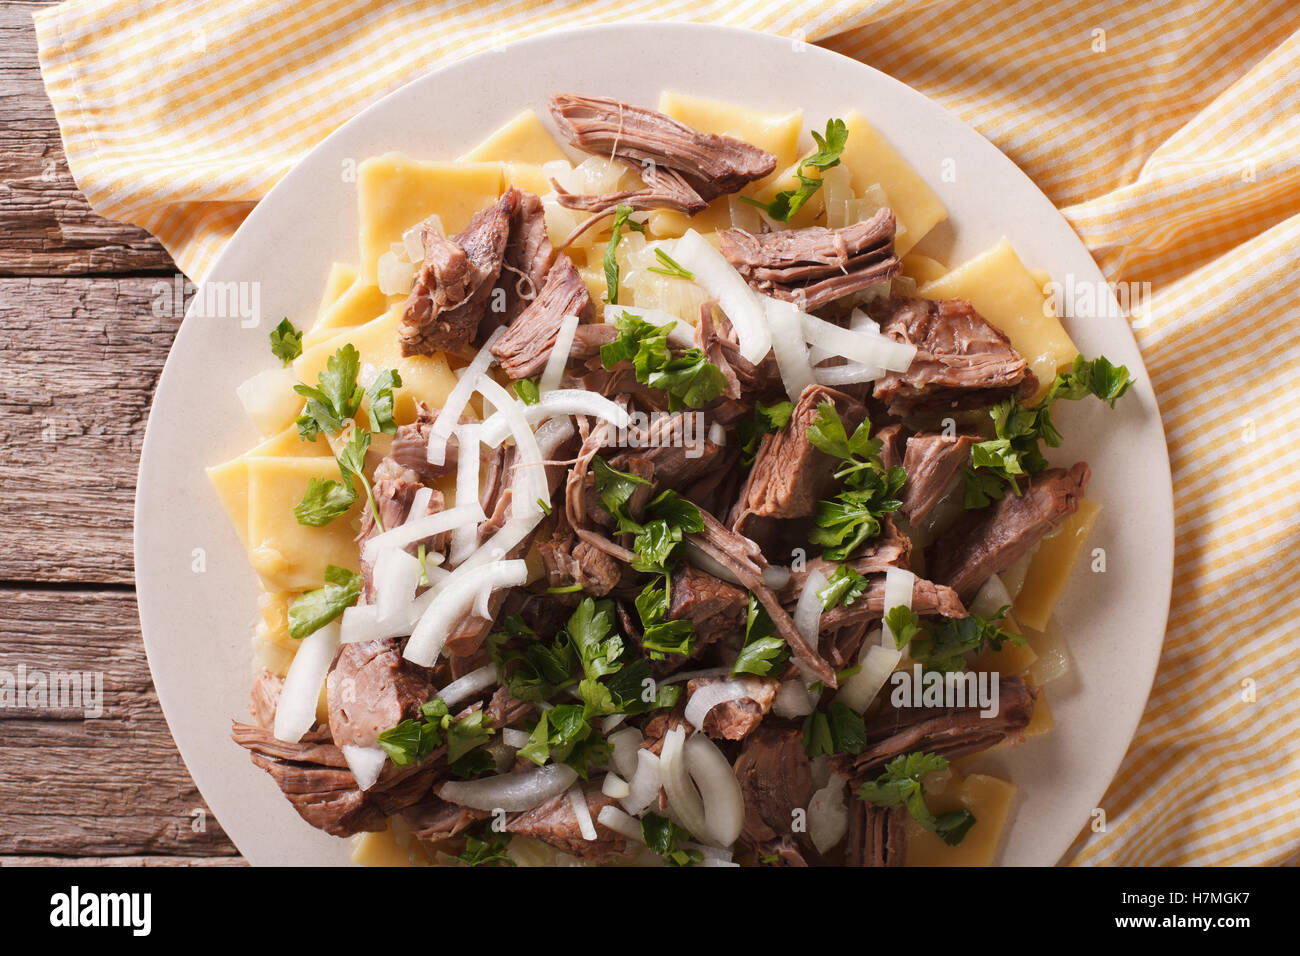 Asian beshbarmak - noodles with lamb and onion close-up on a plate on the table. horizontal top view - Stock Image